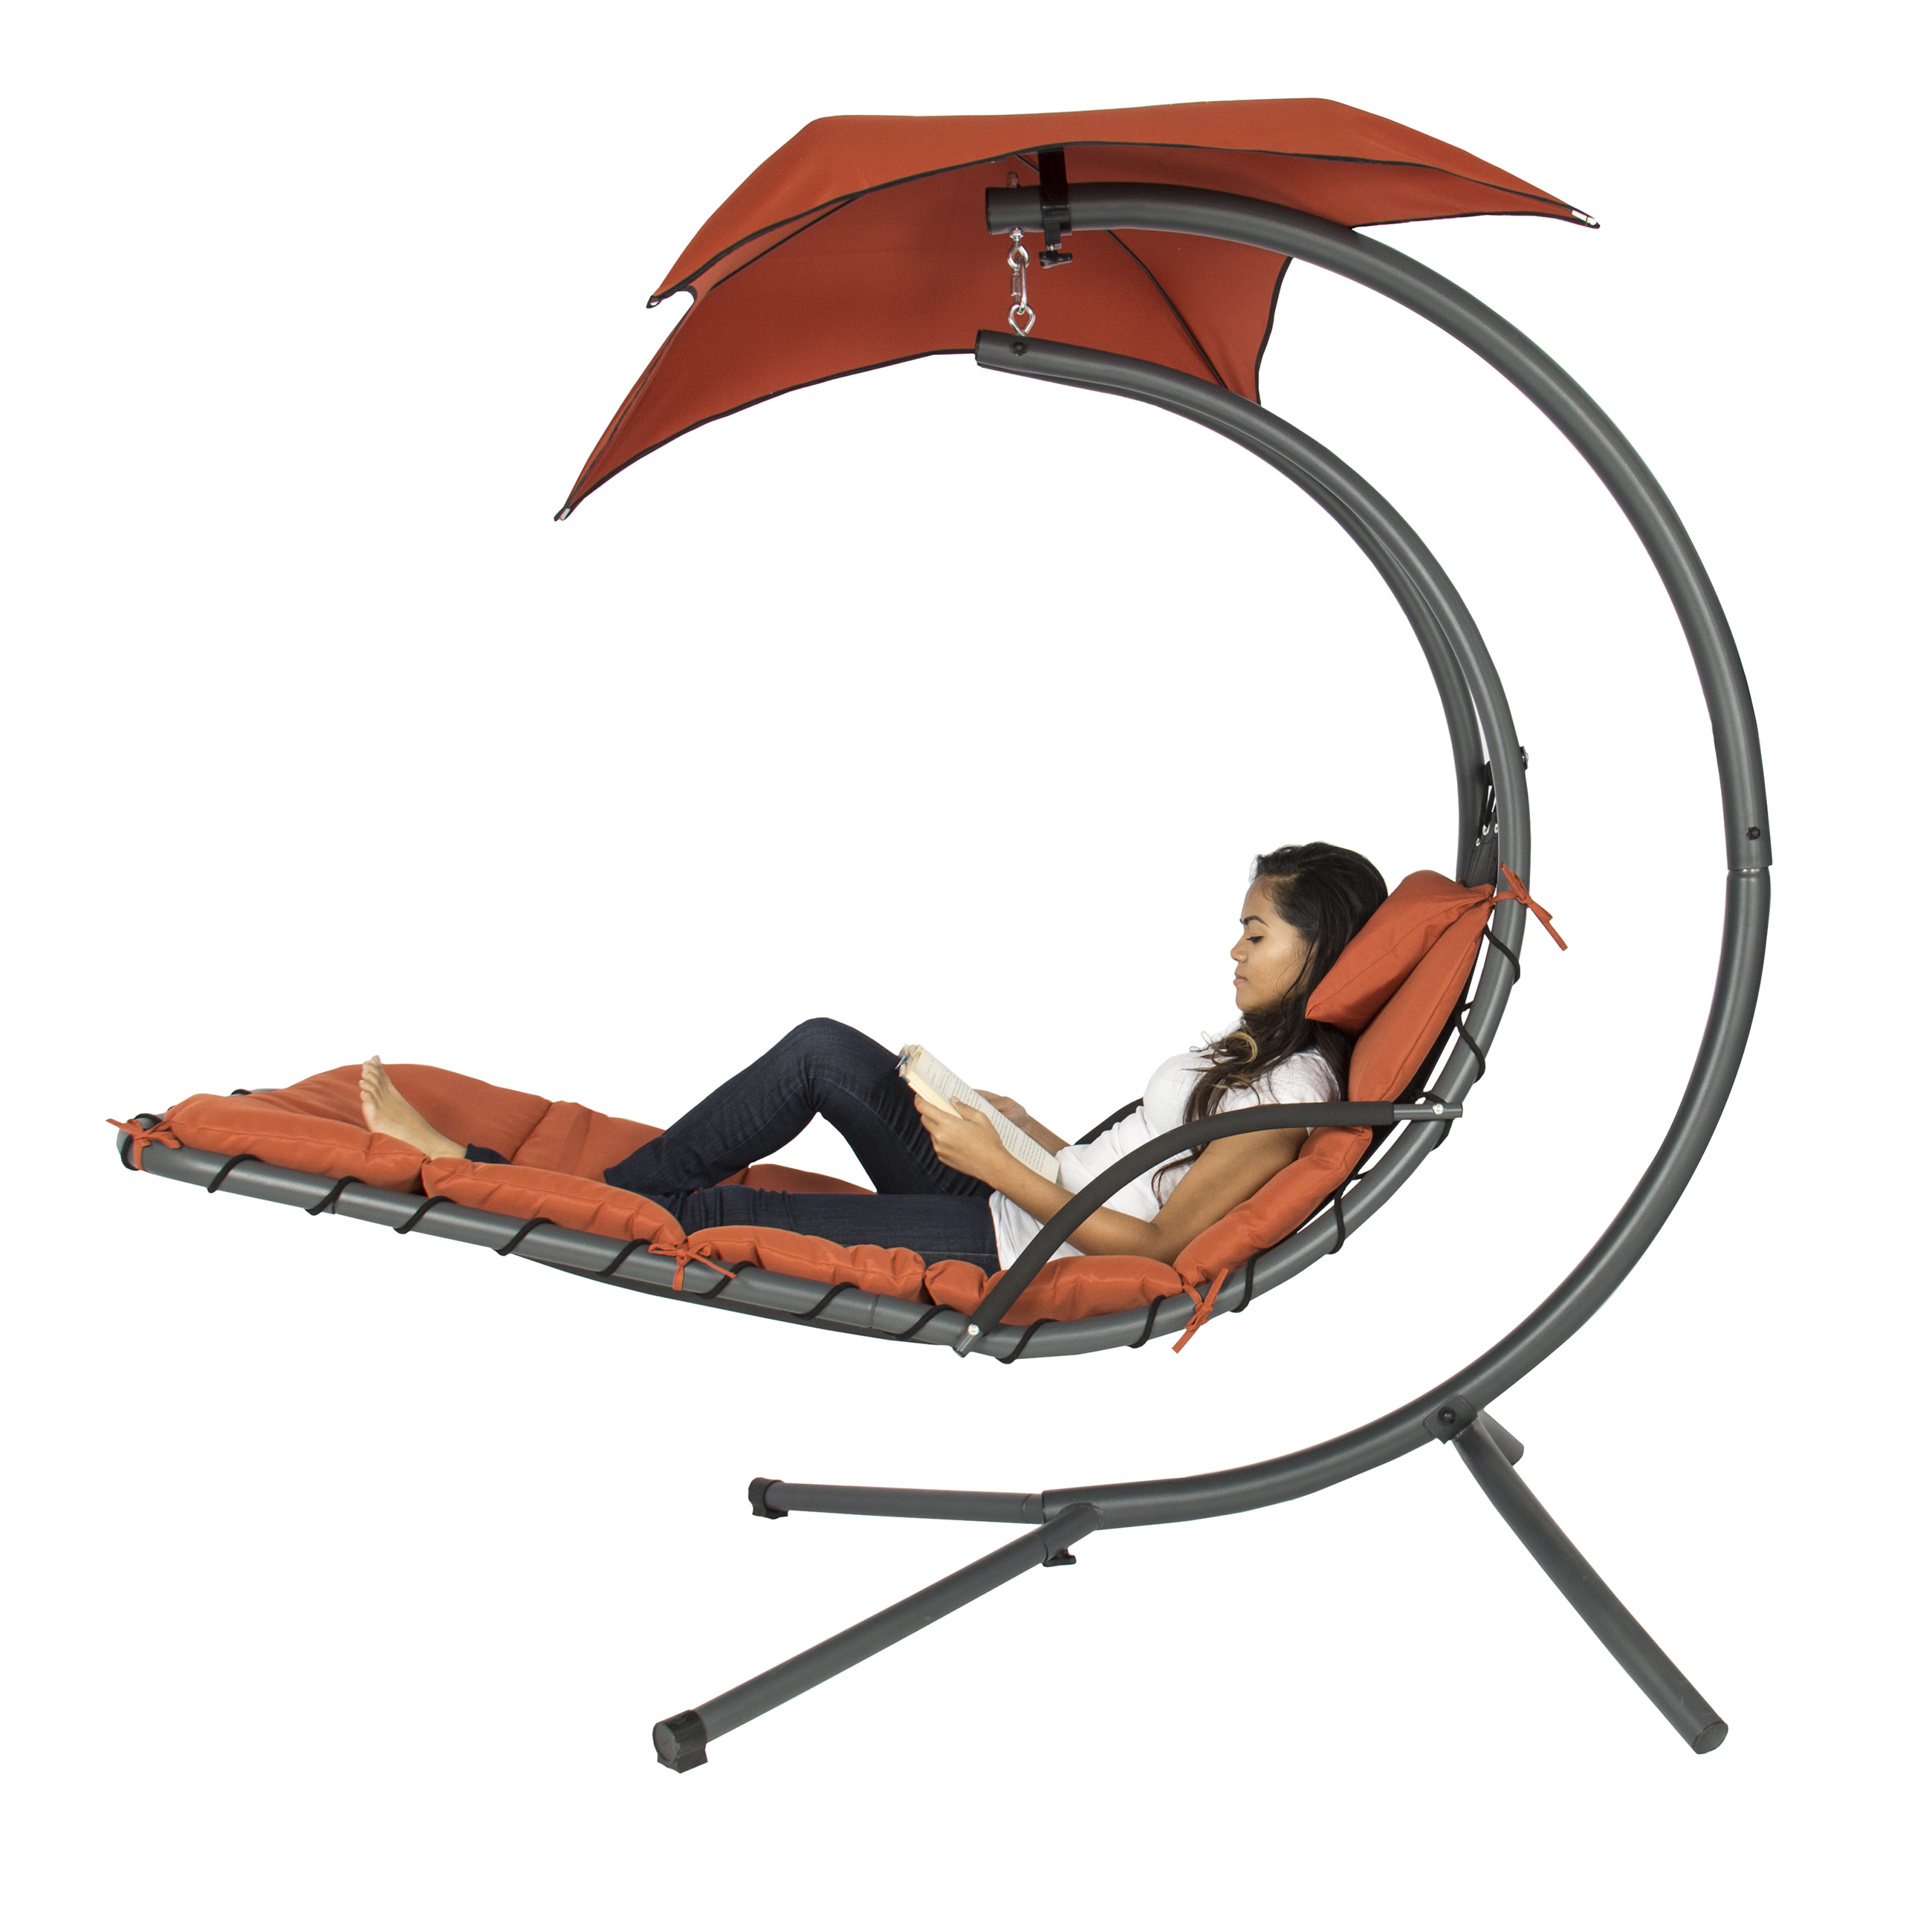 arc curved hammock dream chaise lounge chair outdoor patio pool